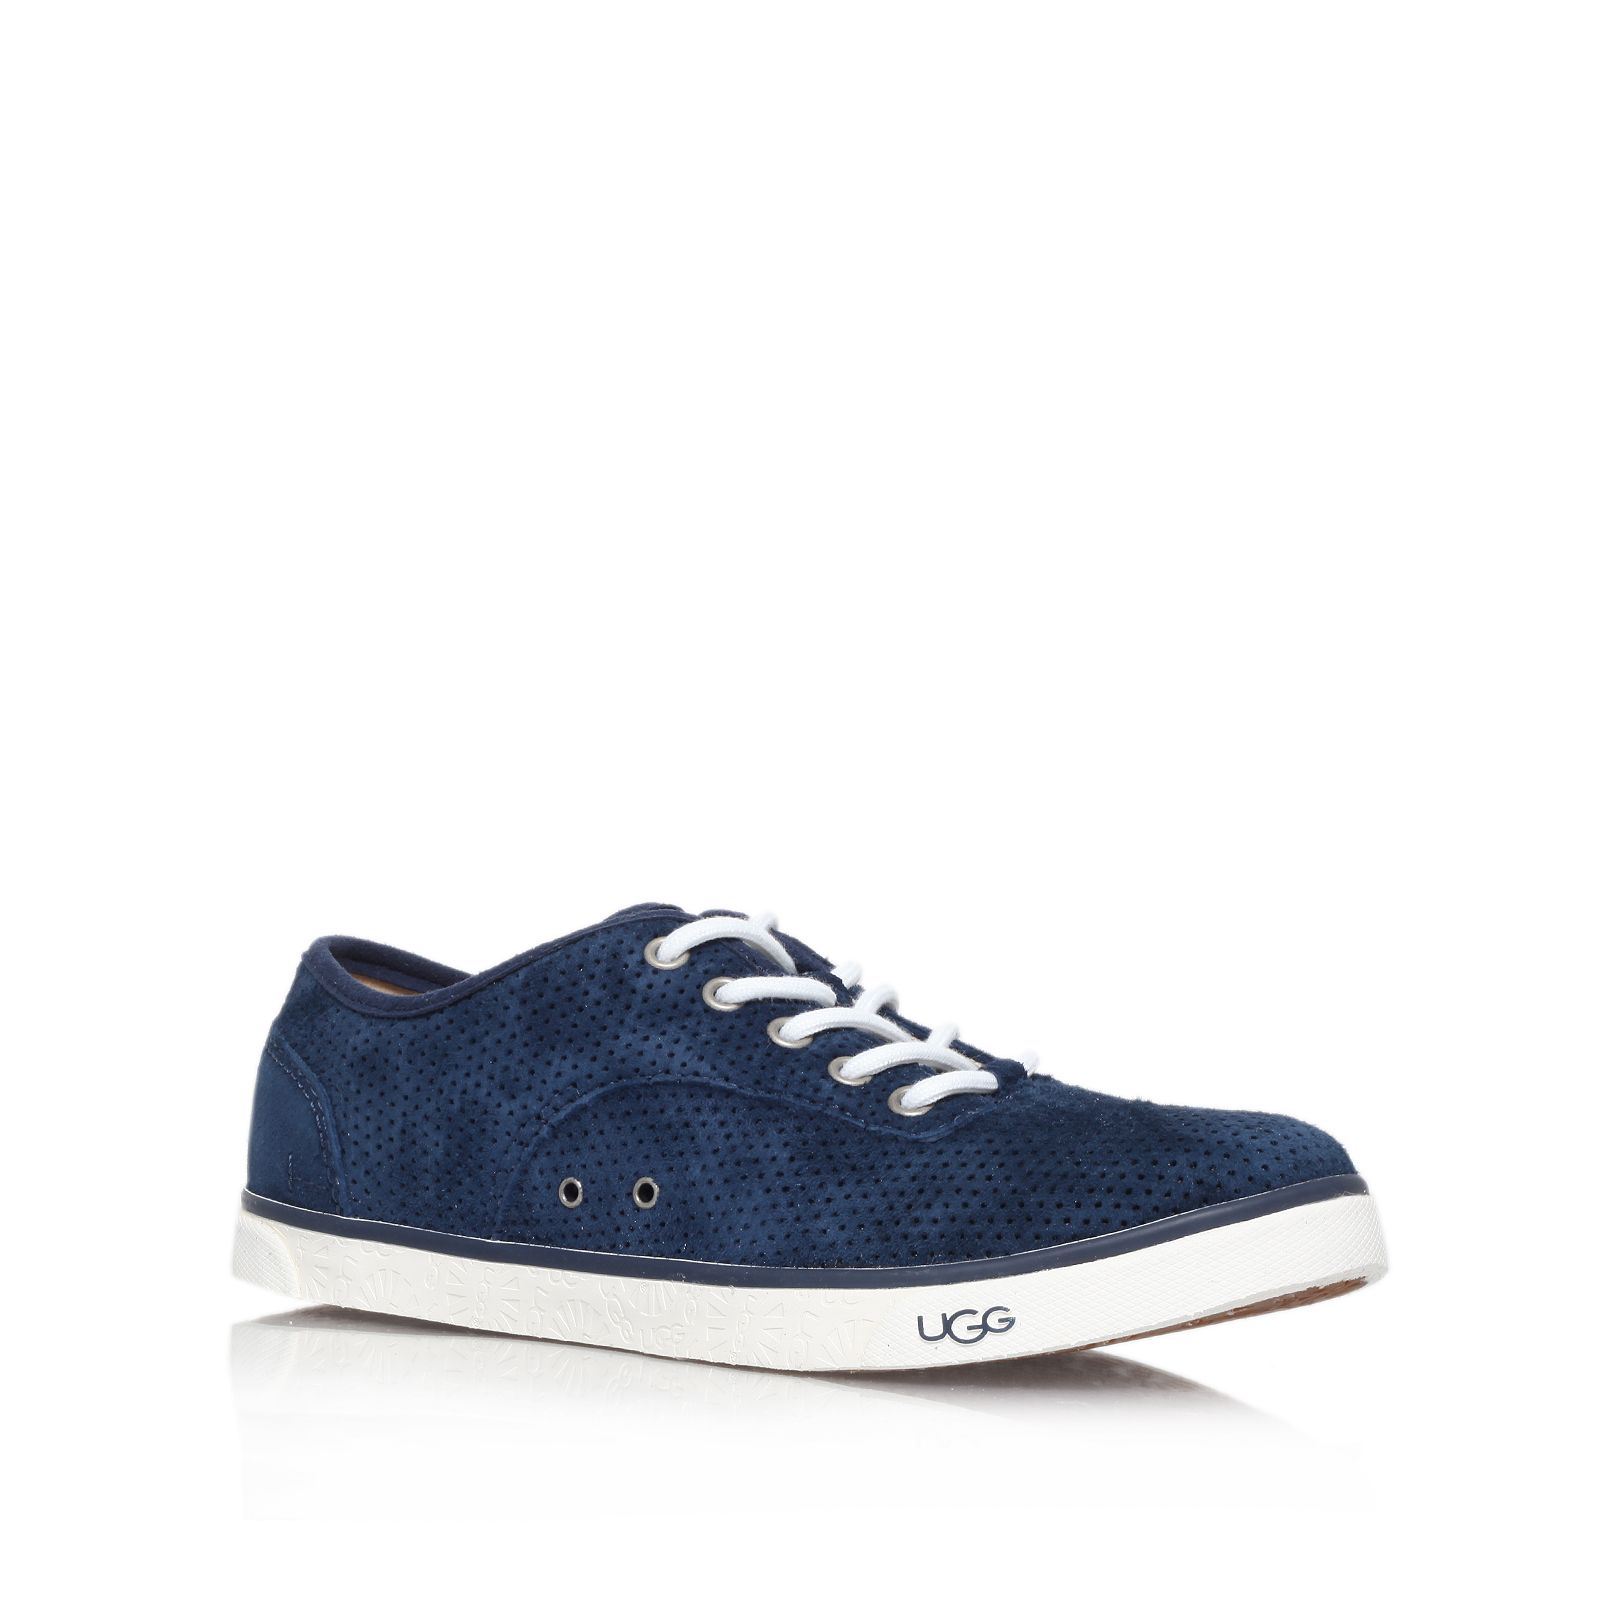 ugg hally trainer shoes